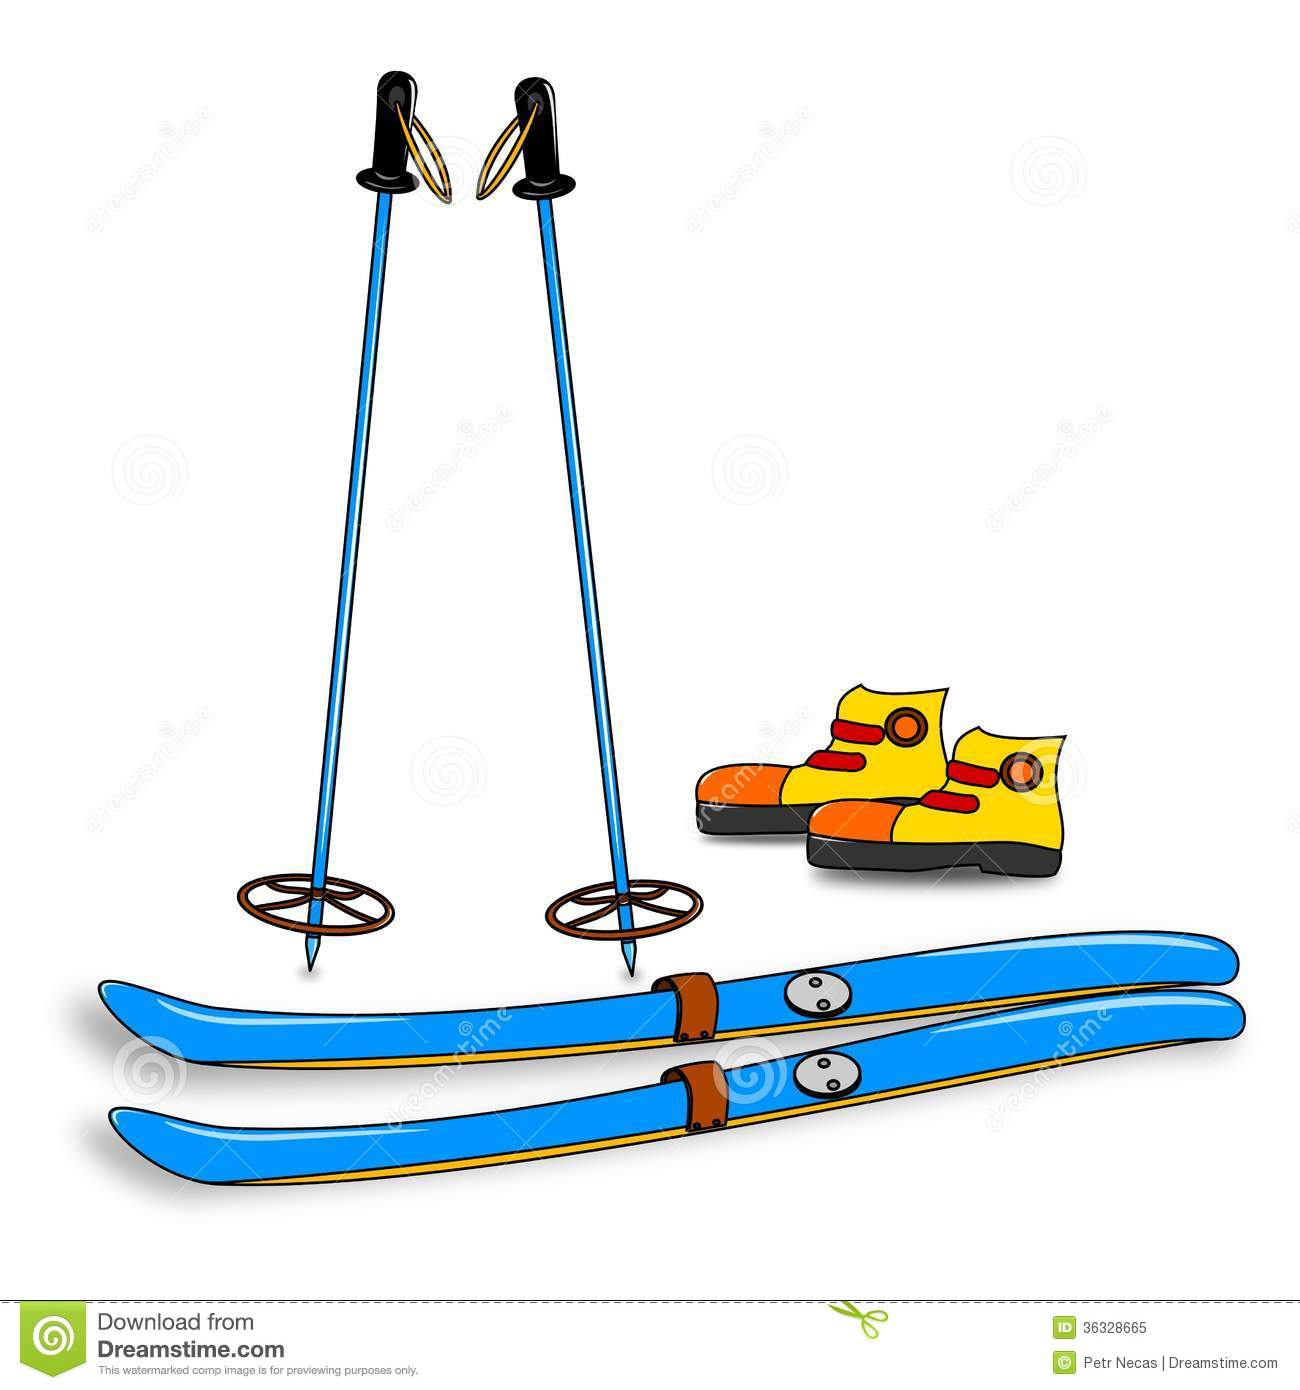 Ski Equipment Clipart.